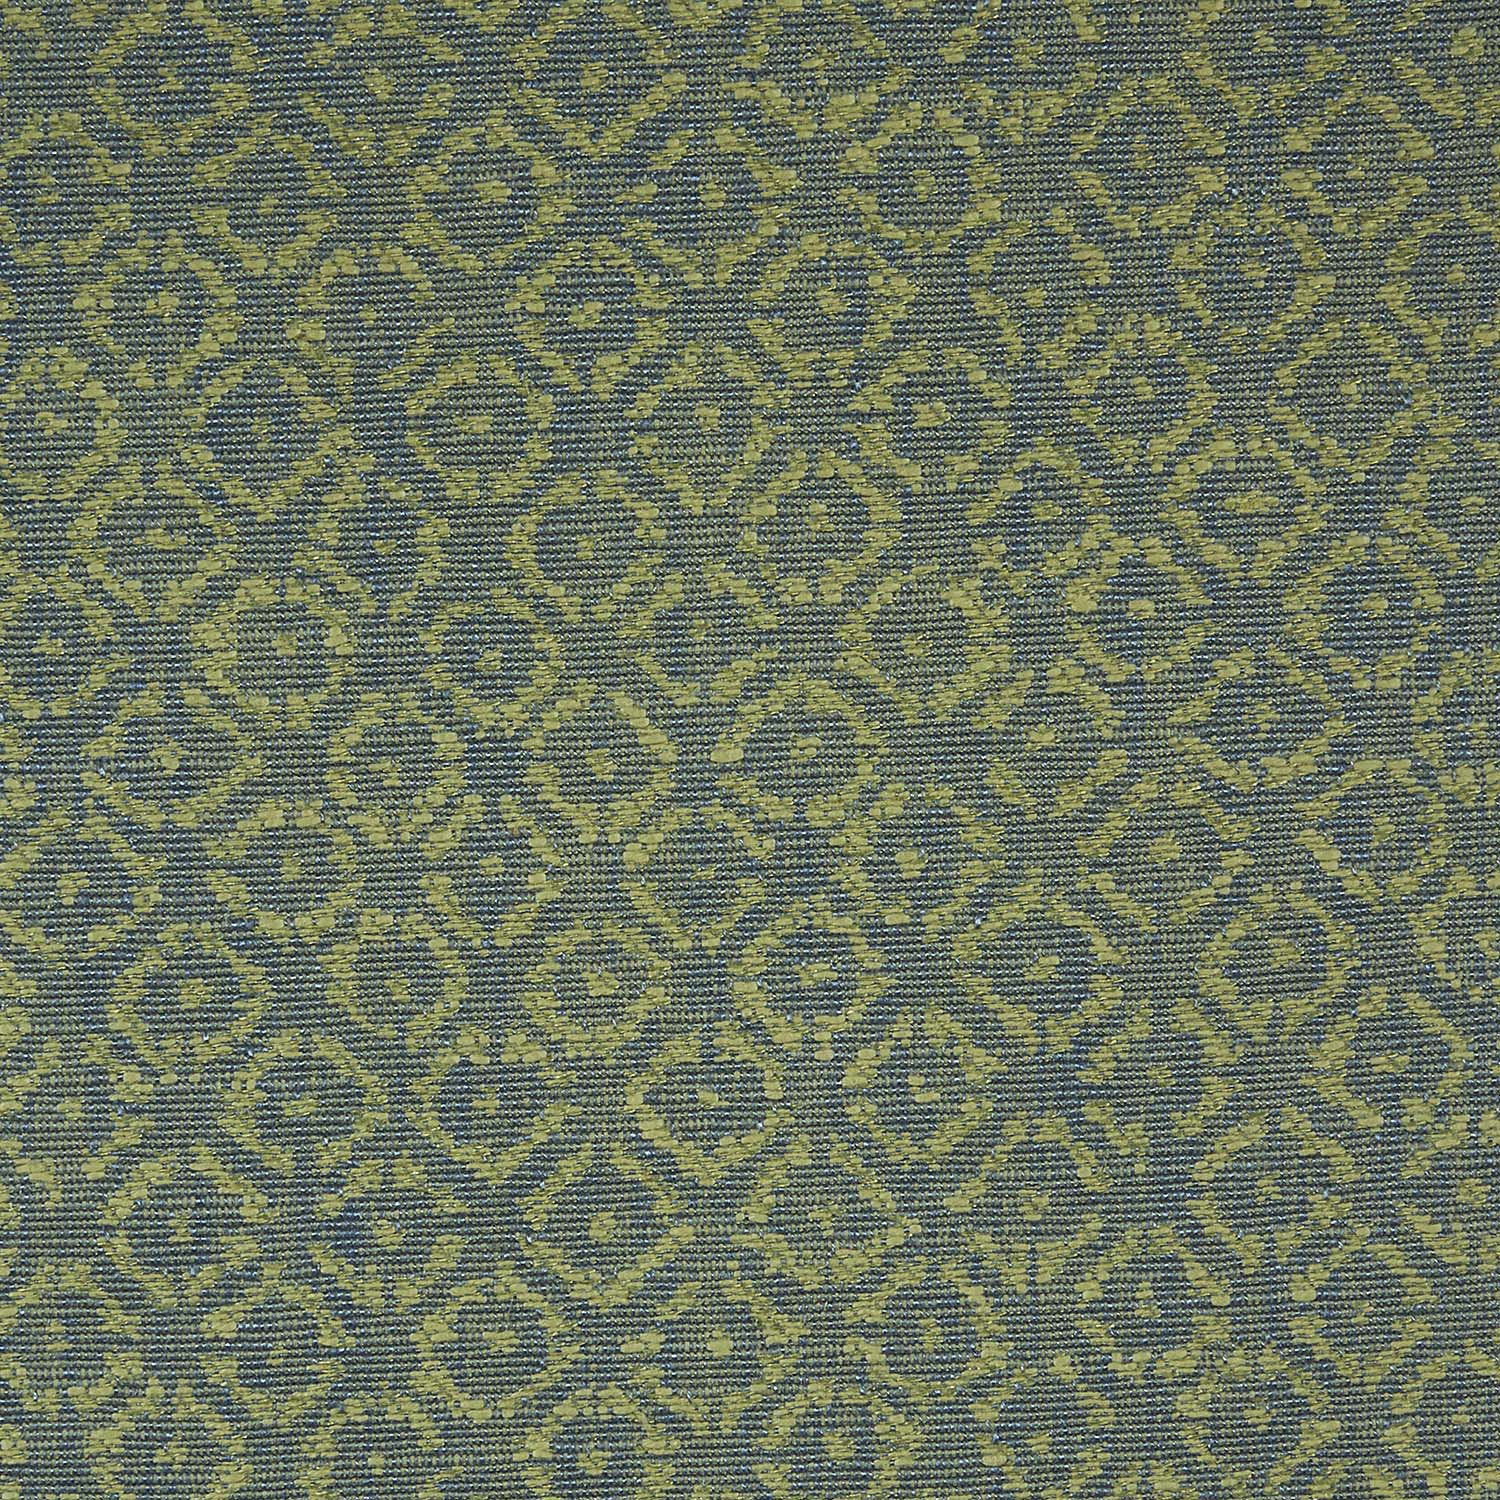 <p><strong>ALBEMARELE</strong>blue/green 1600-05<a href=/the-langham-collection/albemarle-blue-green-1600-05>More →</a></p>